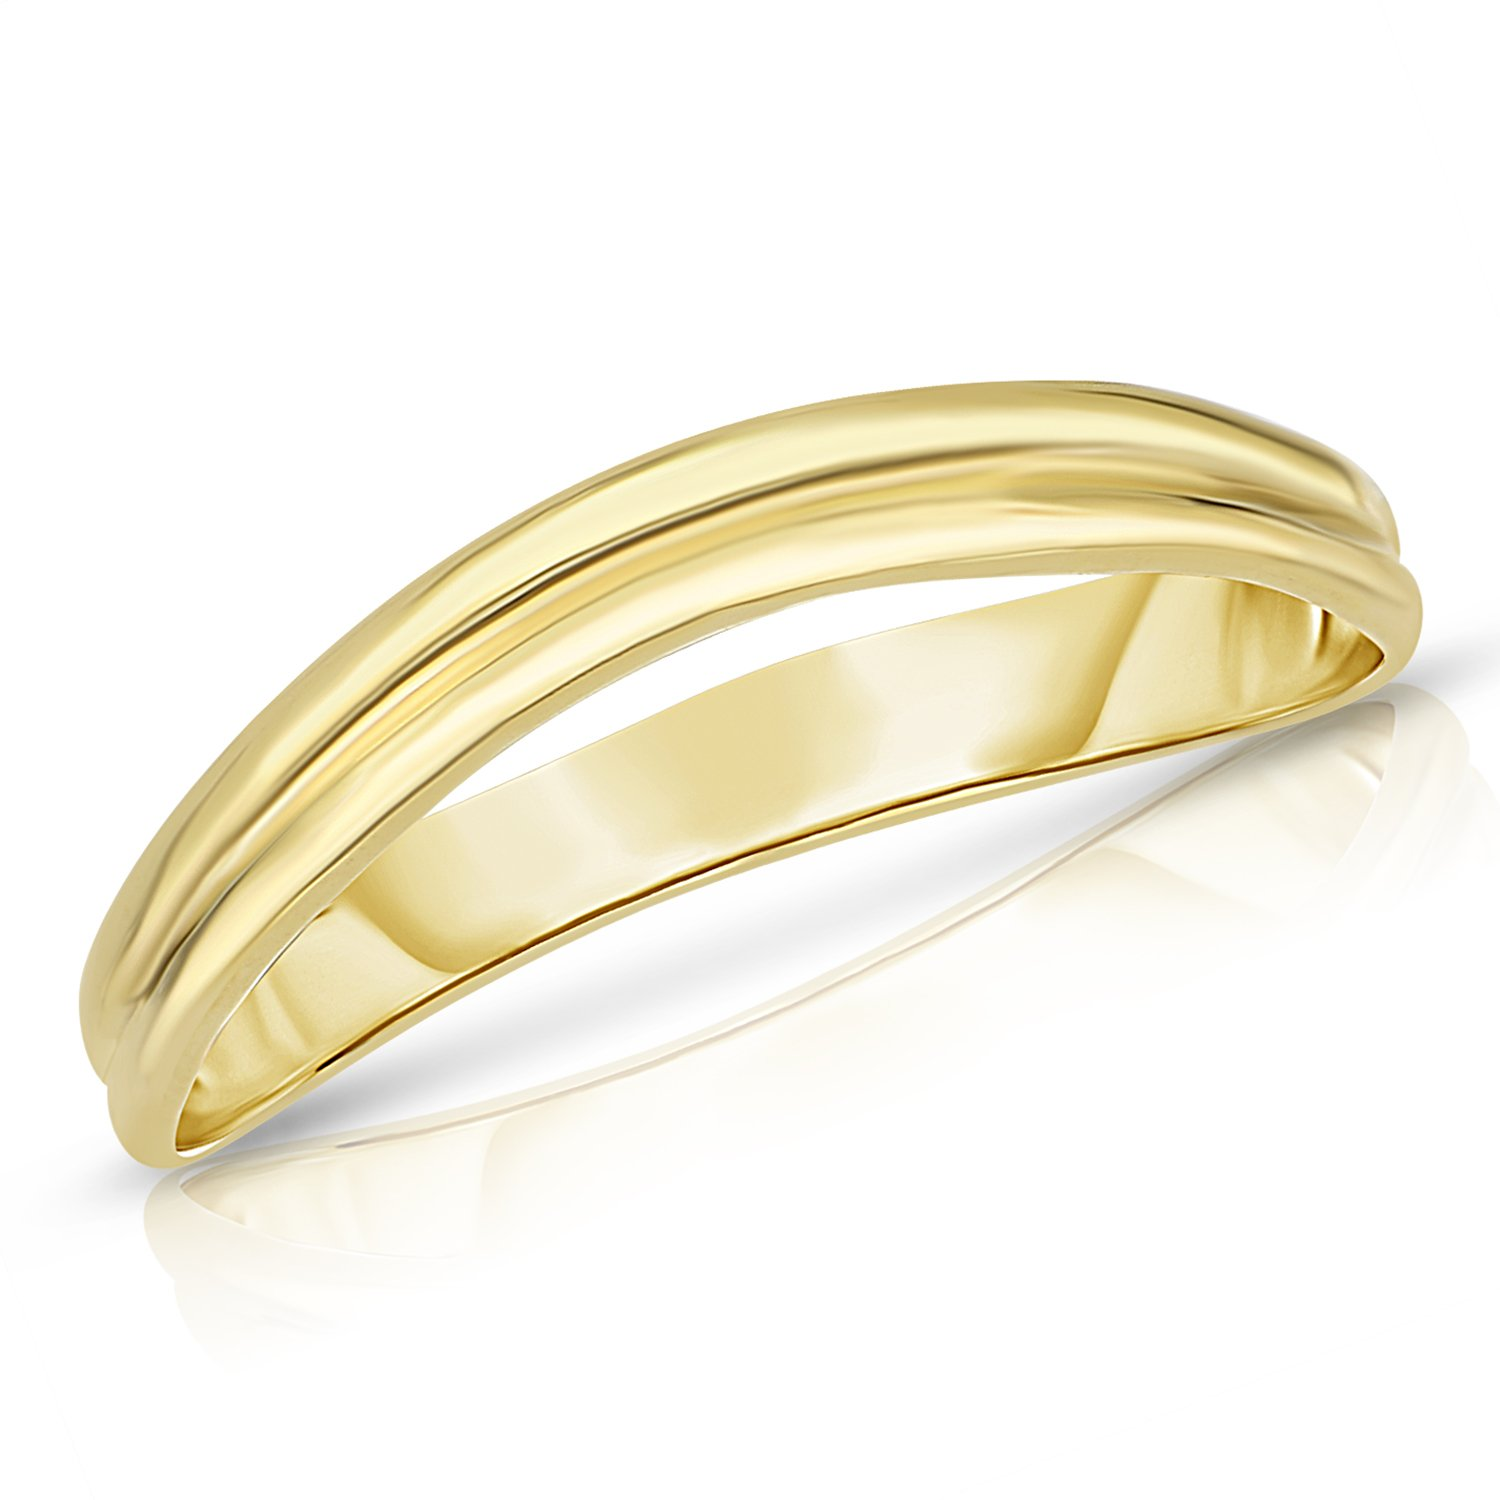 10k Fine Gold Comfort Fit Curved Double Wave Thumb Ring 3mm